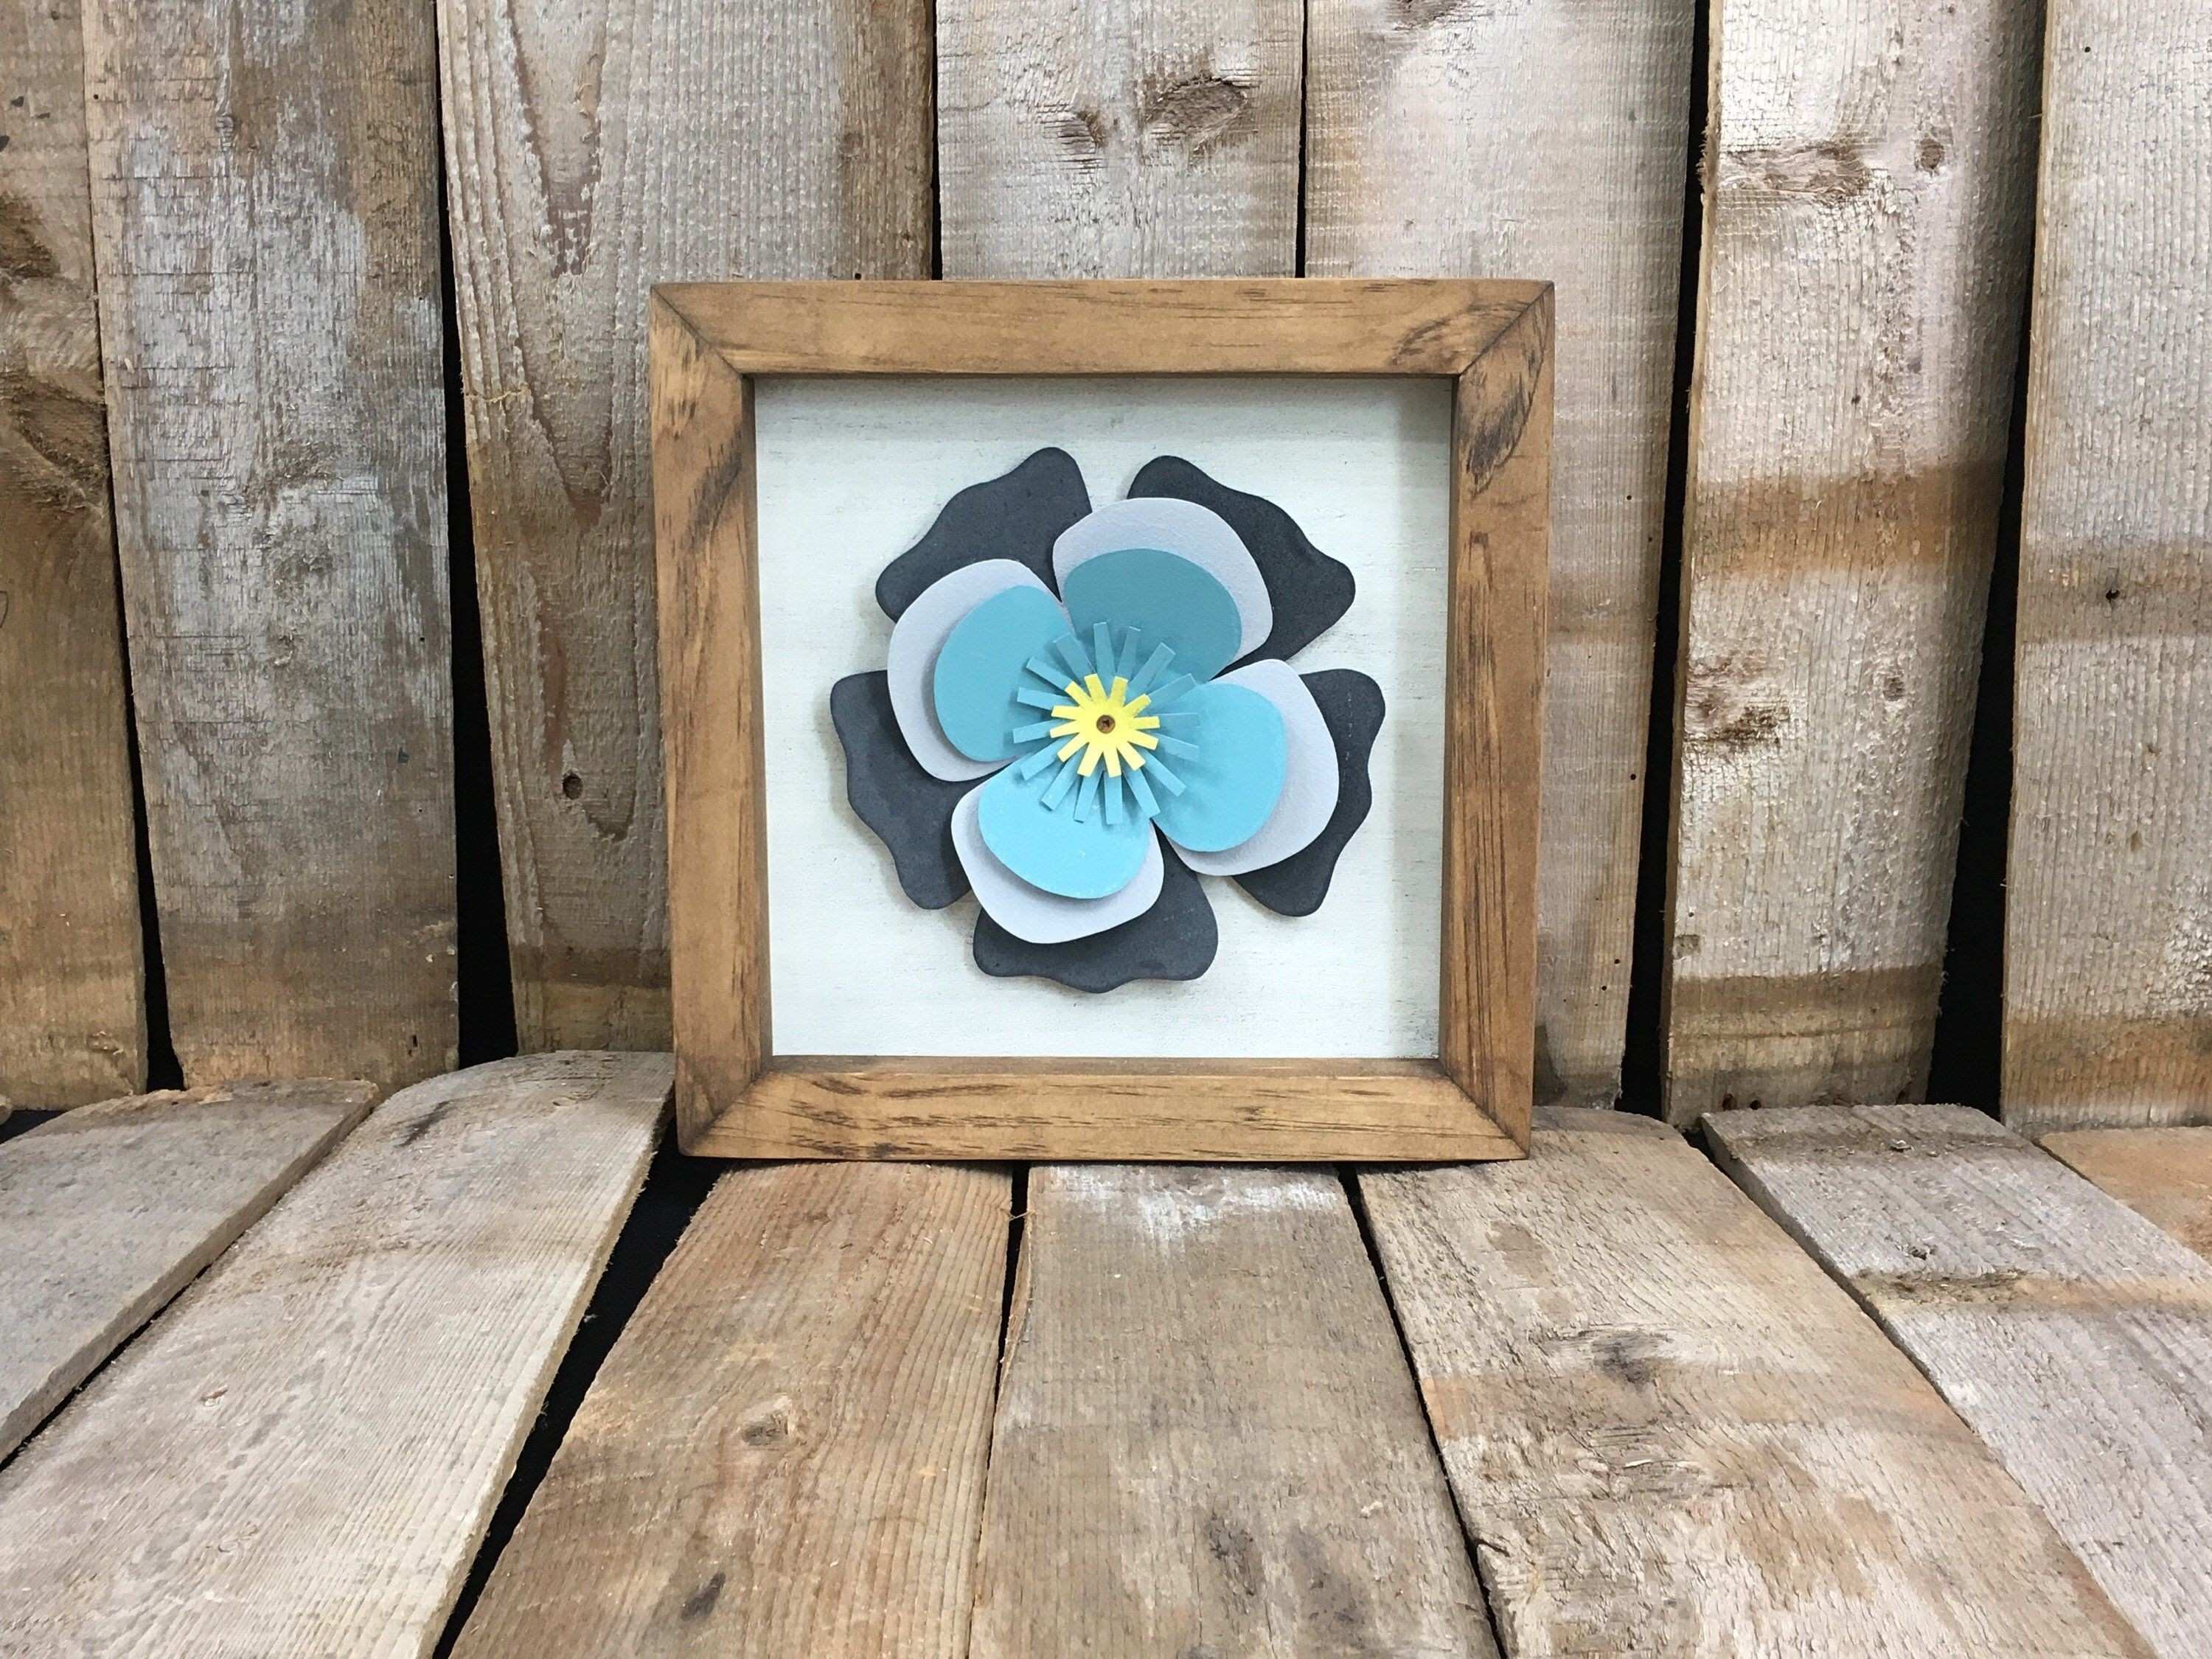 Excited to share the latest addition to my etsy shop Flower Wall